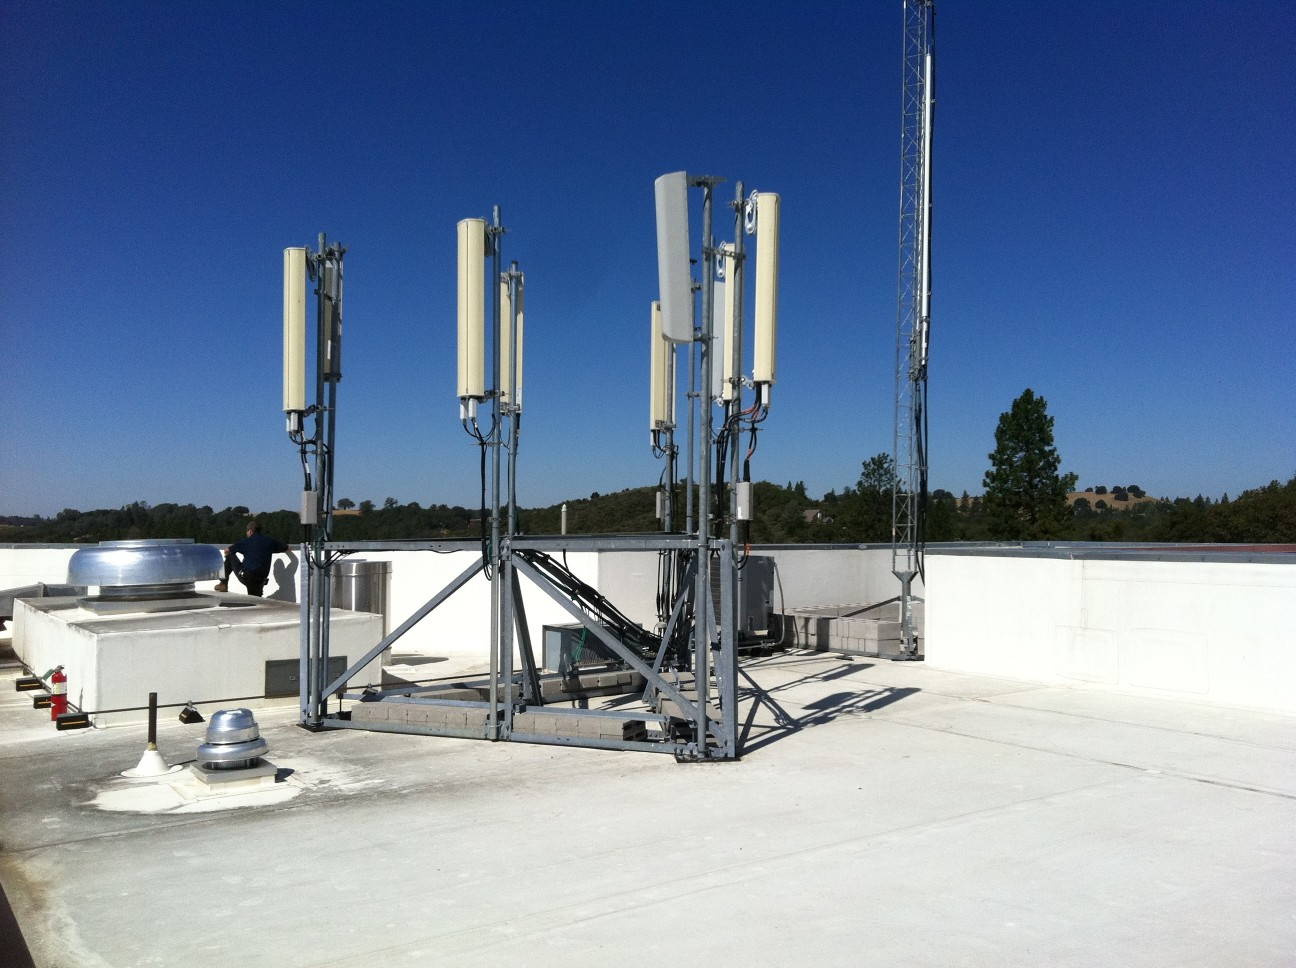 Should I Hire A Consultant for Cell Tower Leasing?